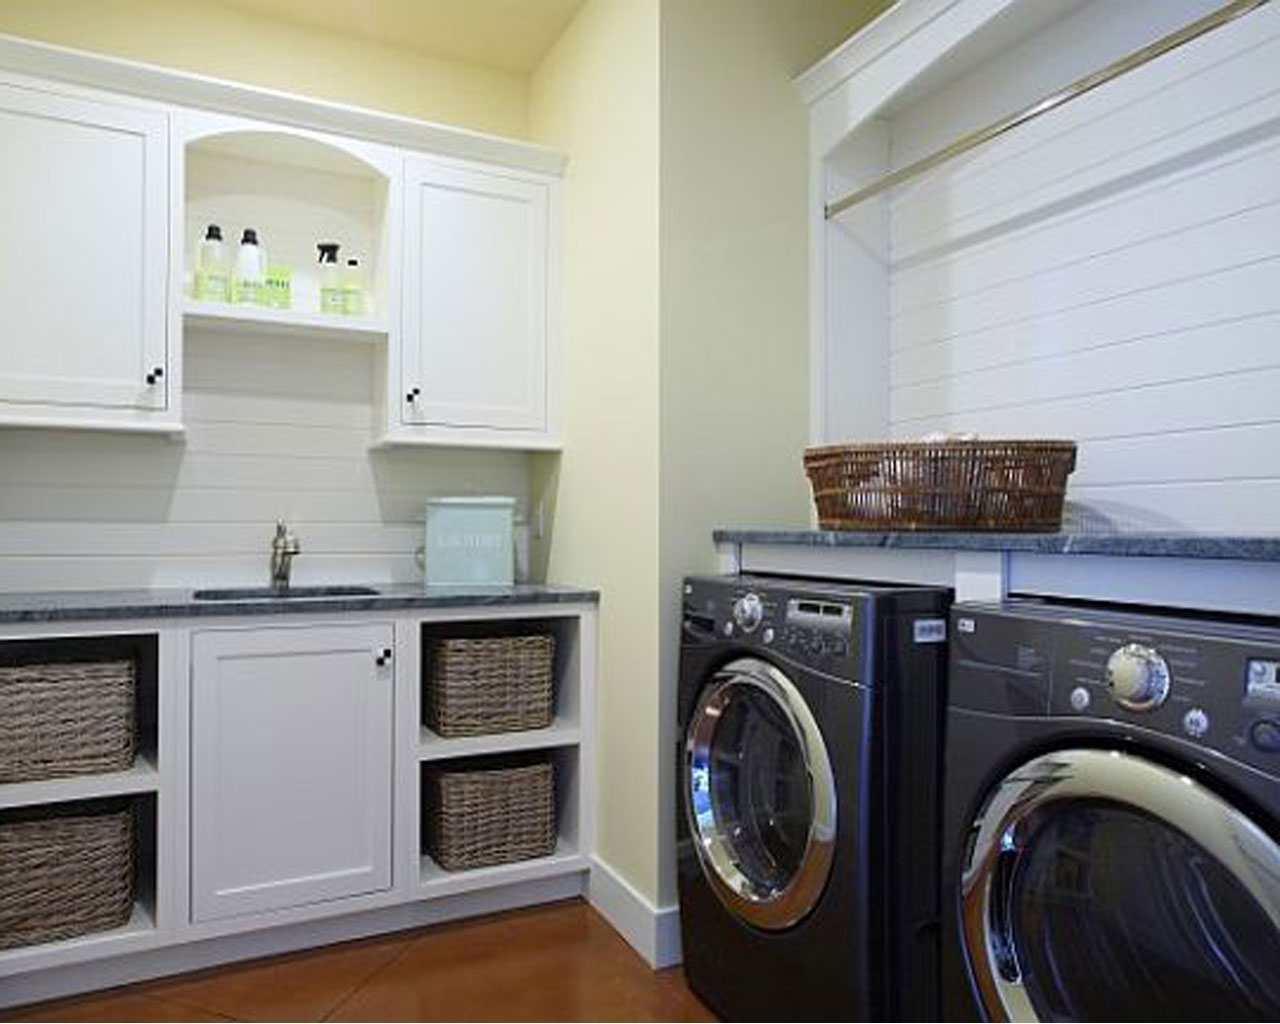 Tidy And Livable Laundry Room Idea With Washing And Drying Machines And  White Wall And Basket